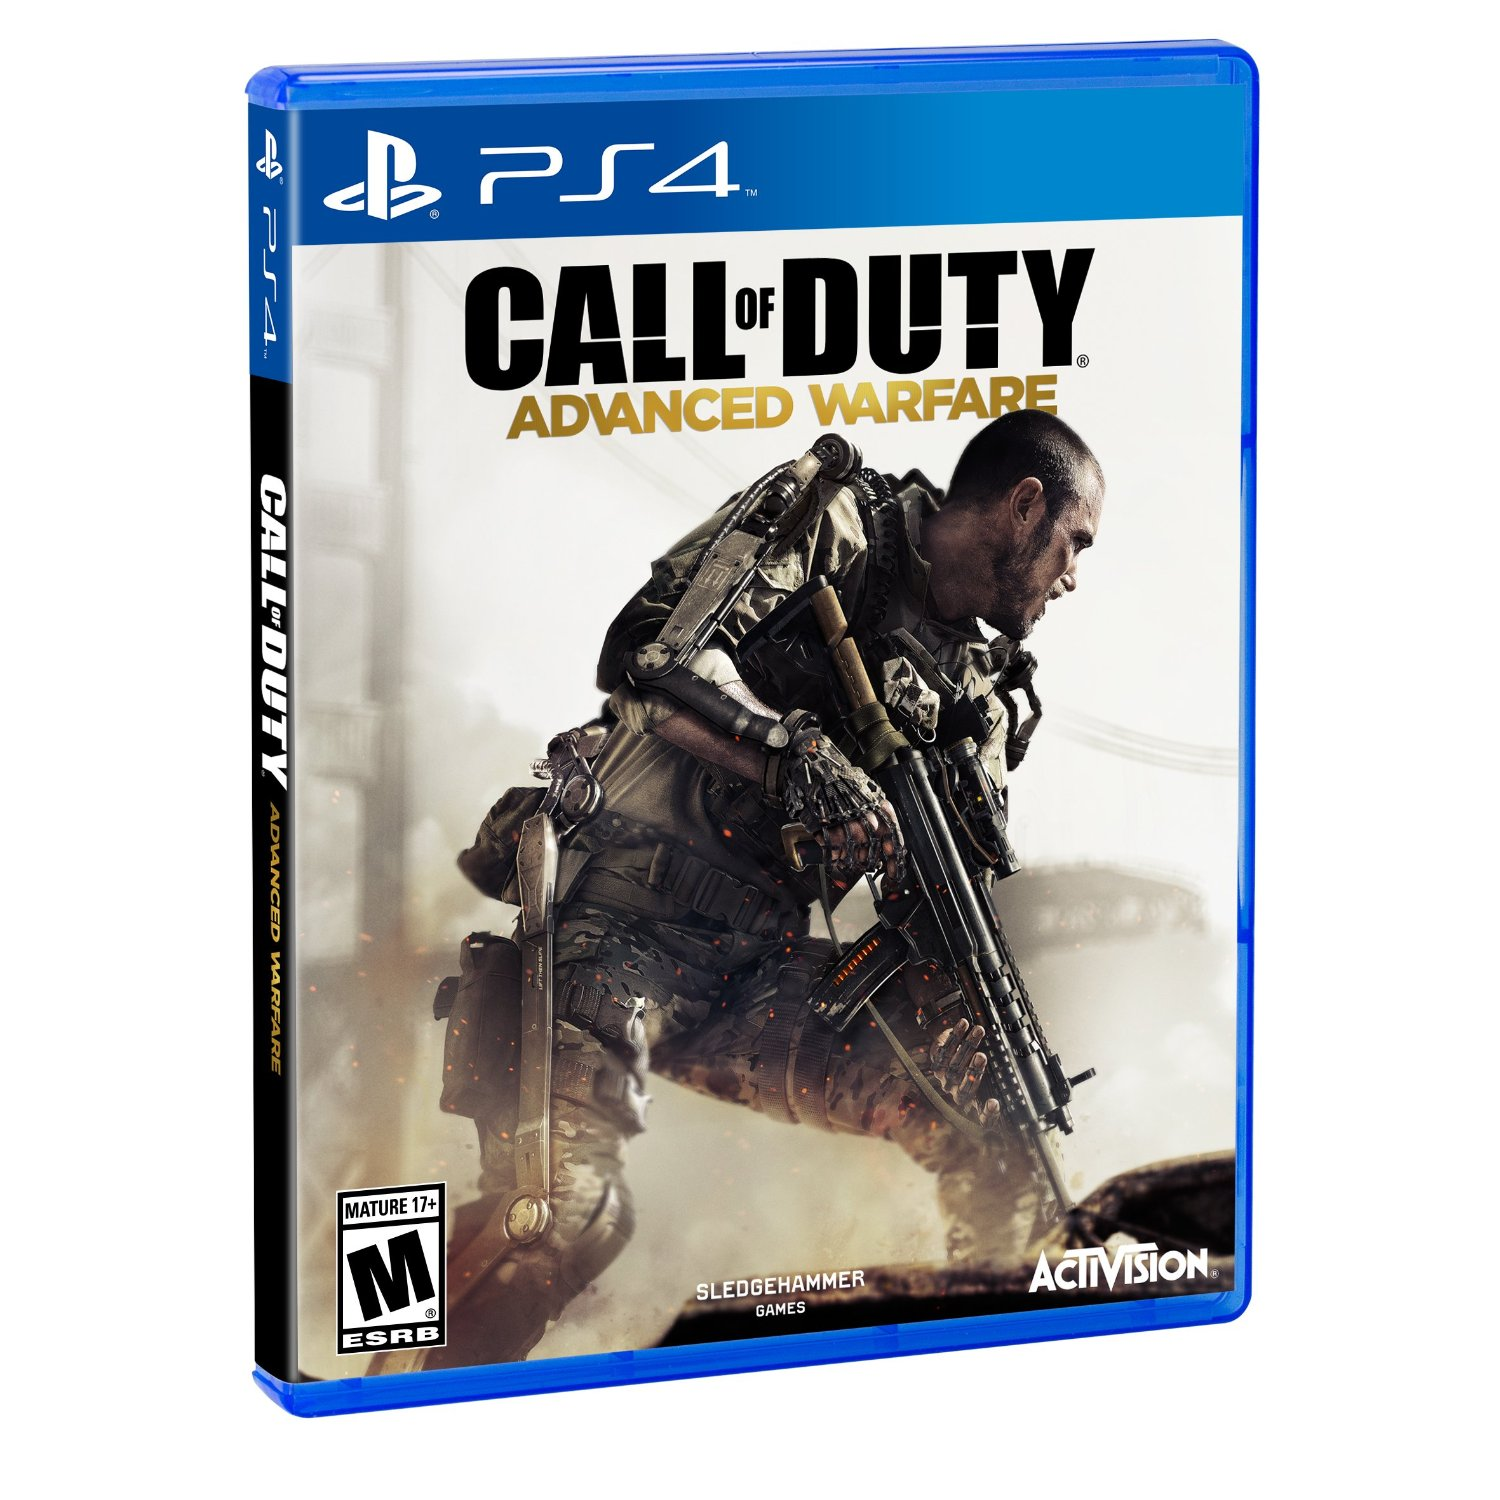 PS4 COD Call of Duty ADVANCED WARFARE em Português e Espanol